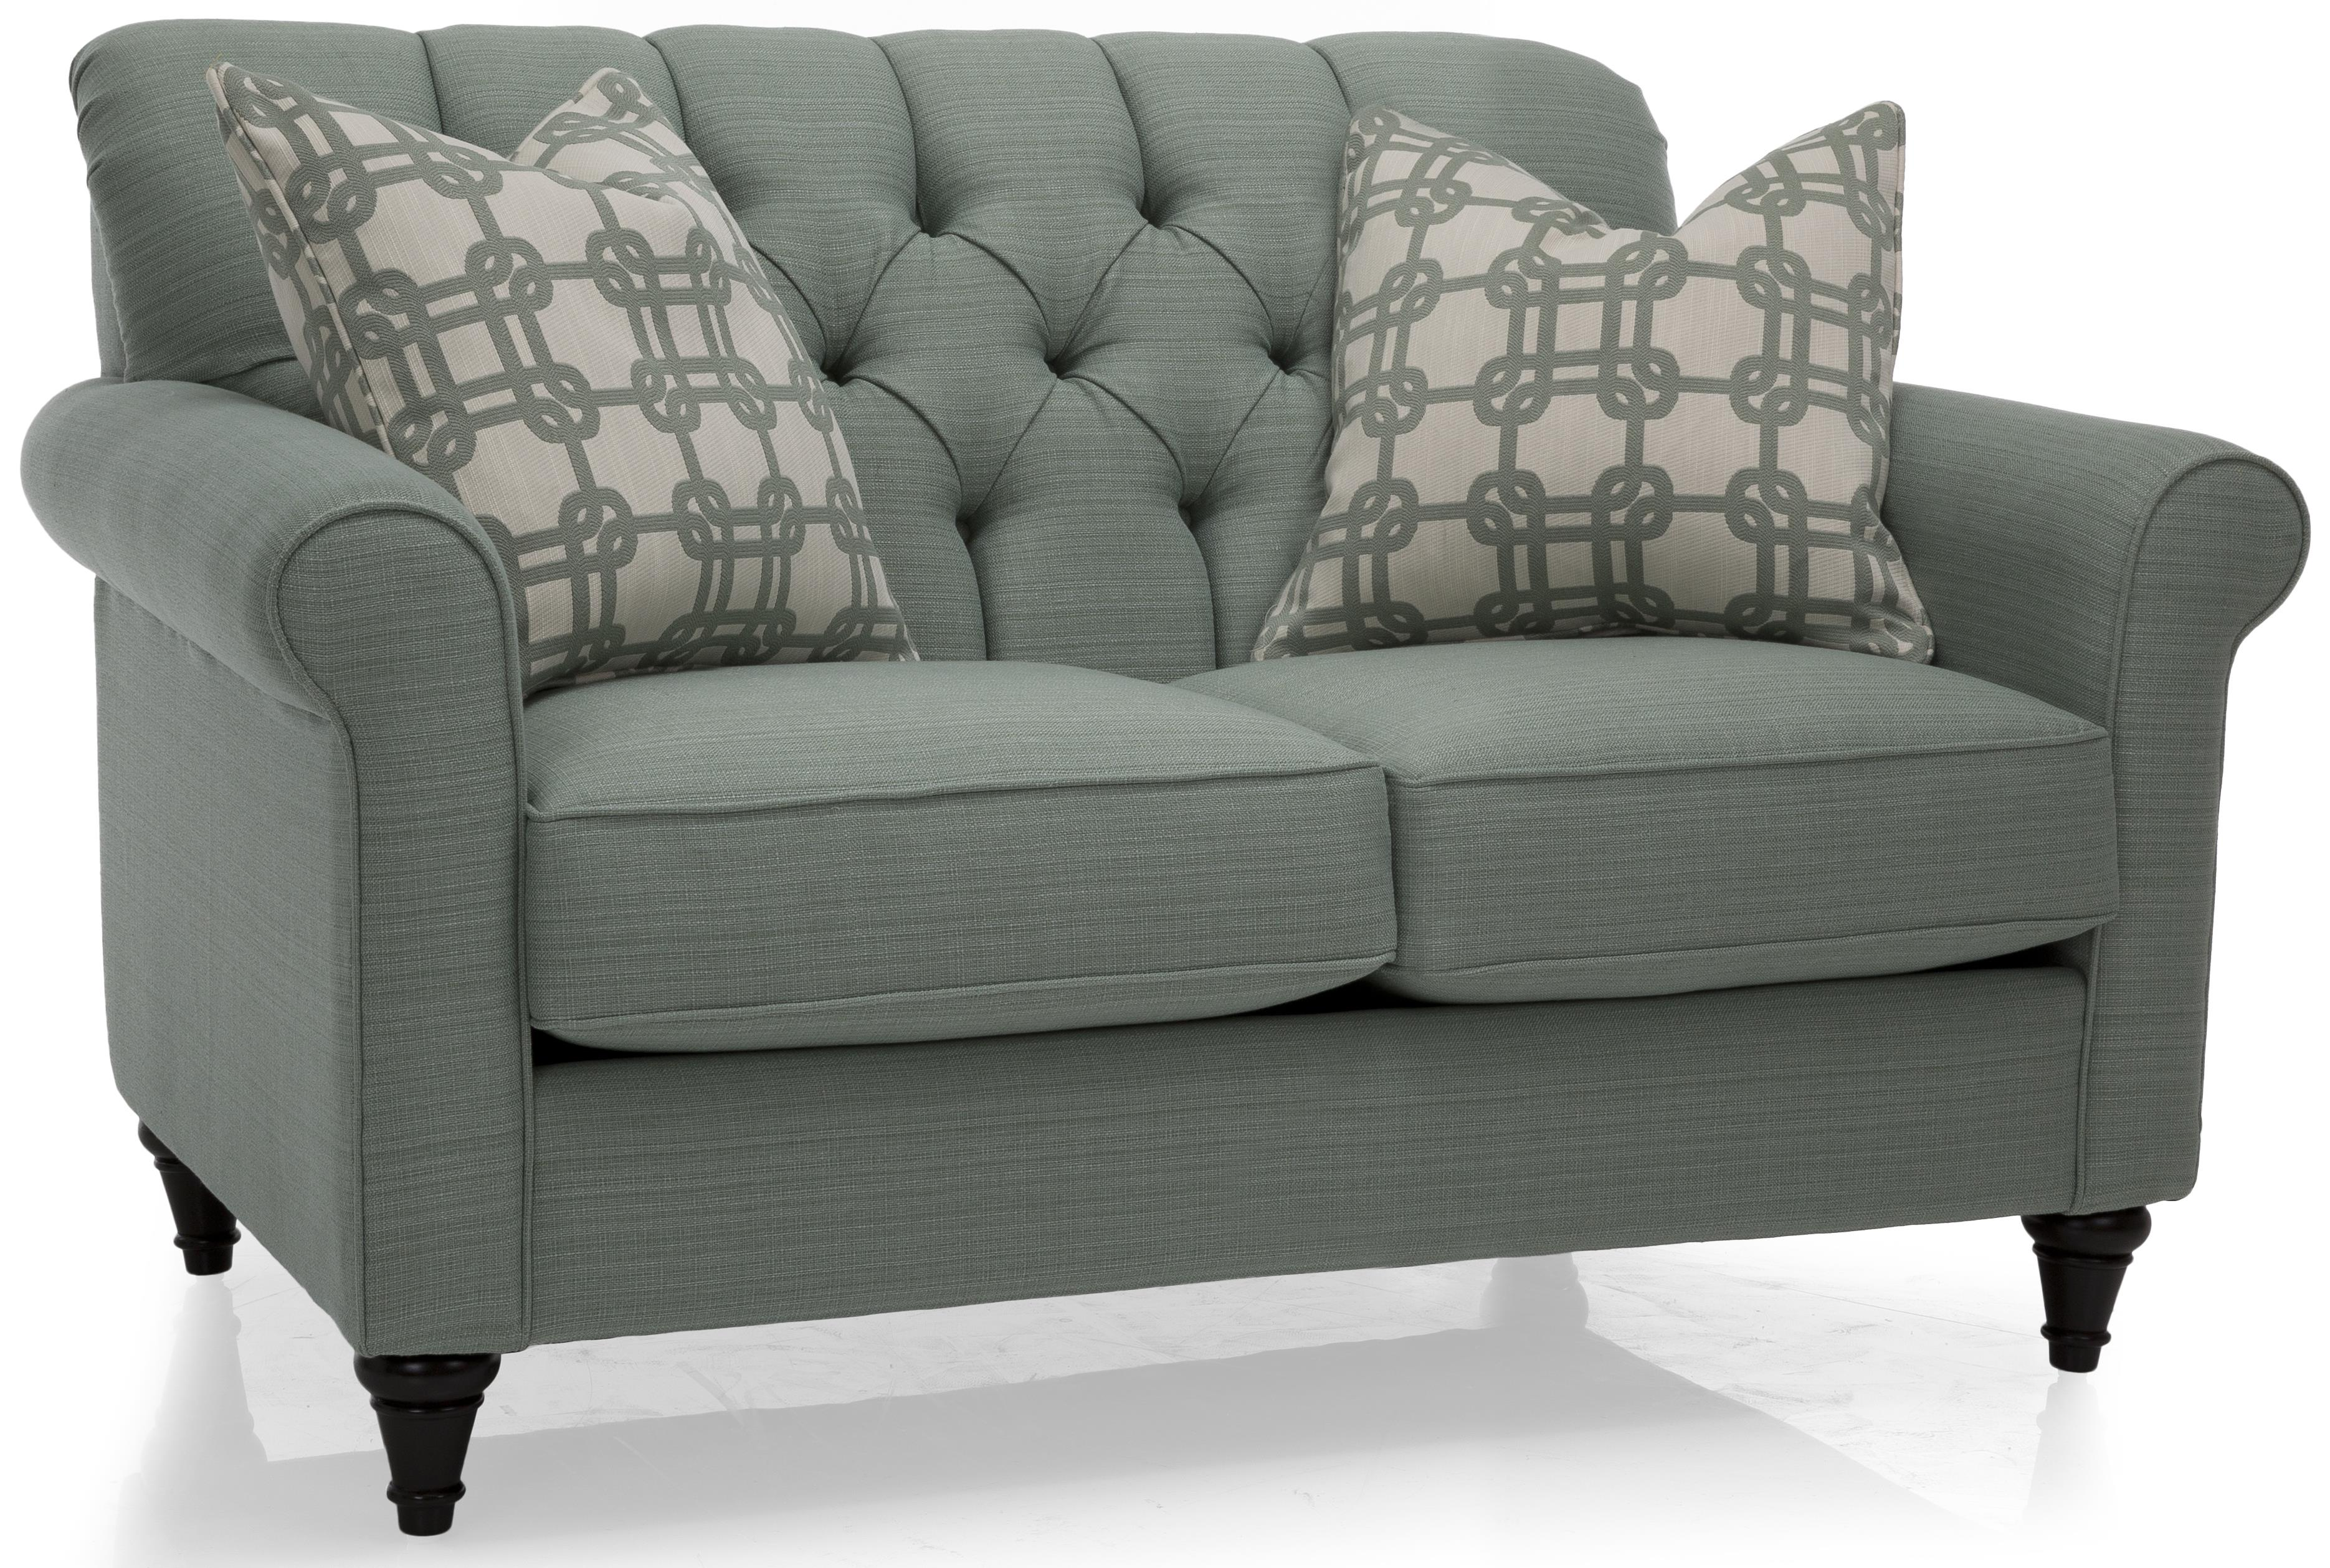 2478 Loveseat by Decor-Rest at Rooms for Less